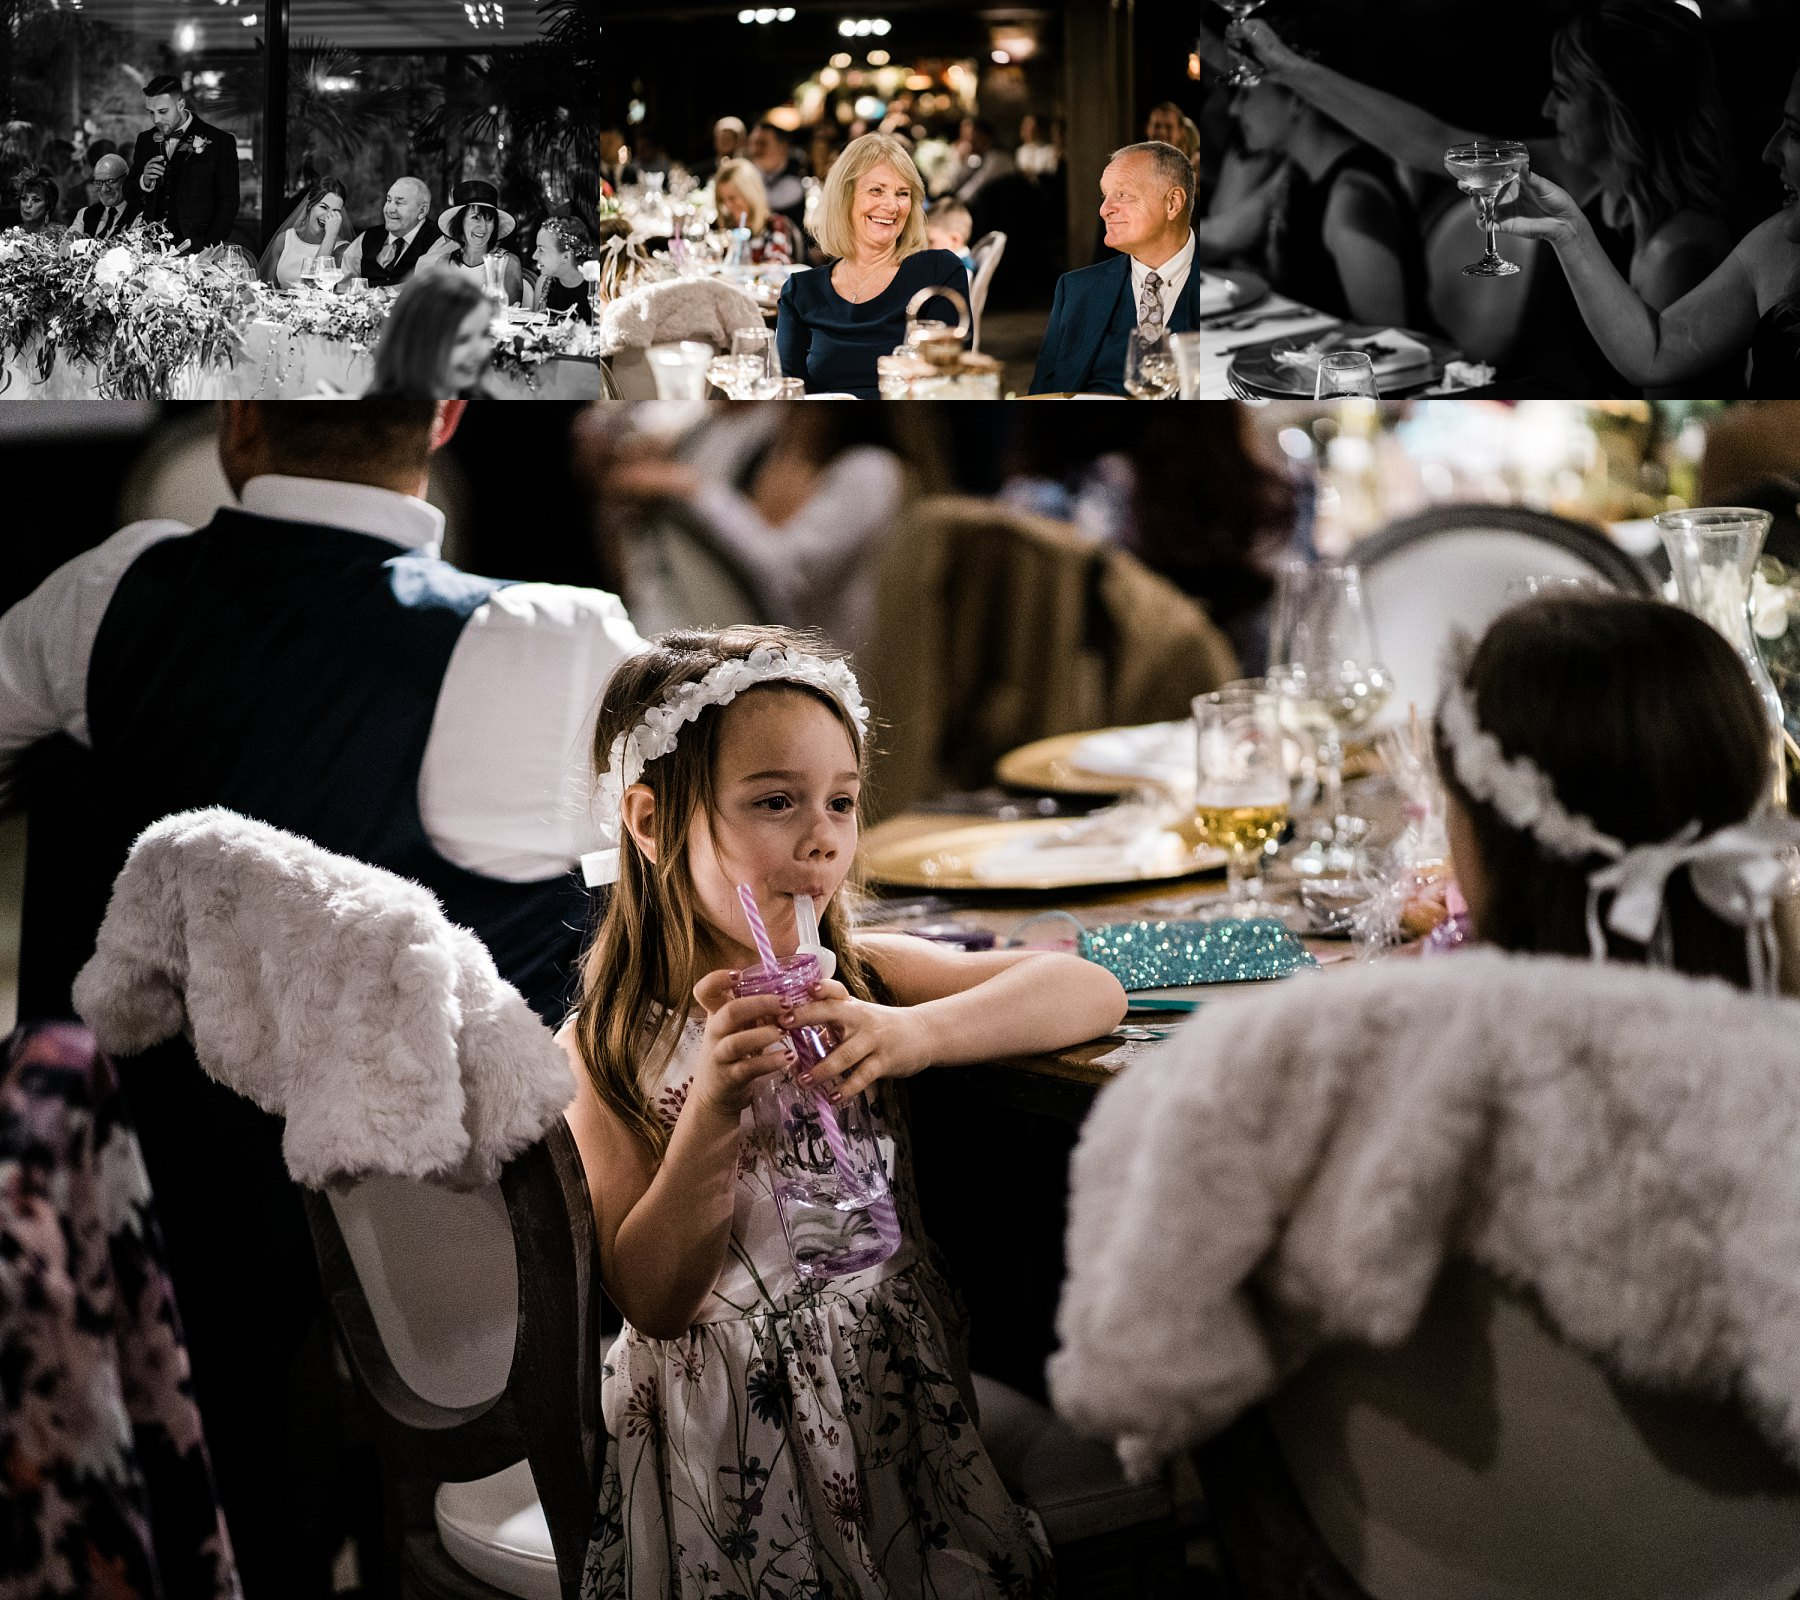 Wedding reception flower girl Le petite Chateau wedding - Newcastle Wedding Photographer